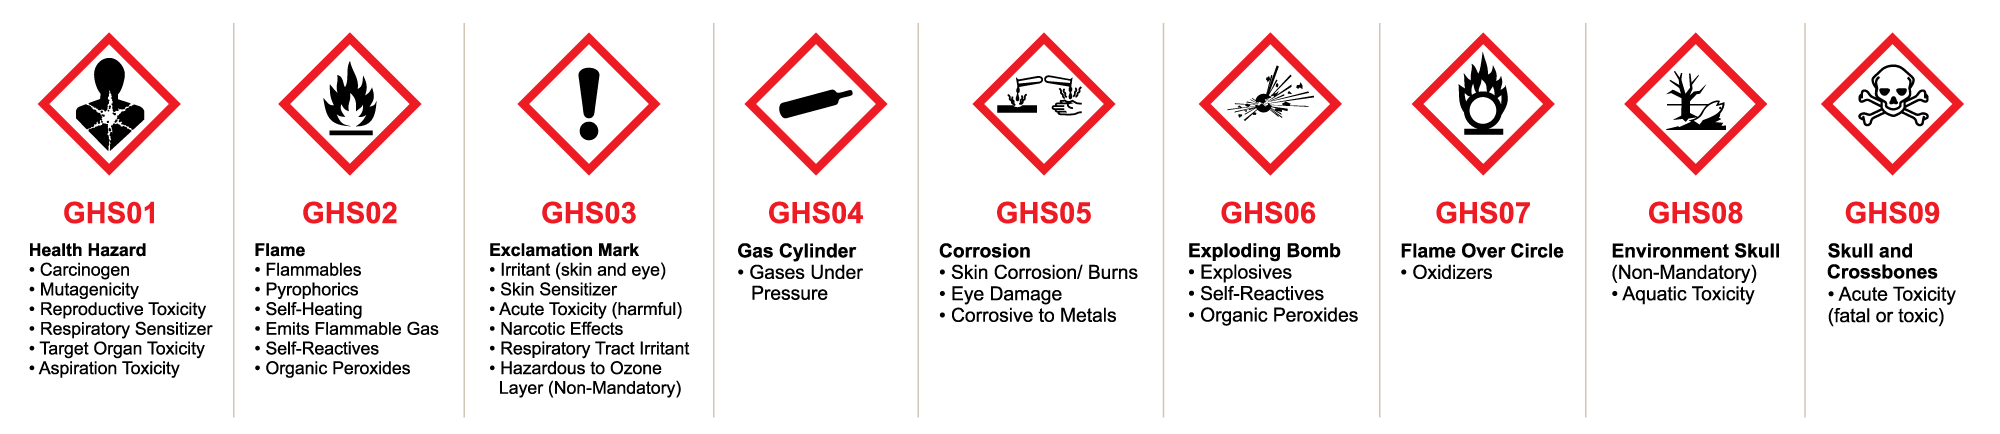 GHS Pictogram